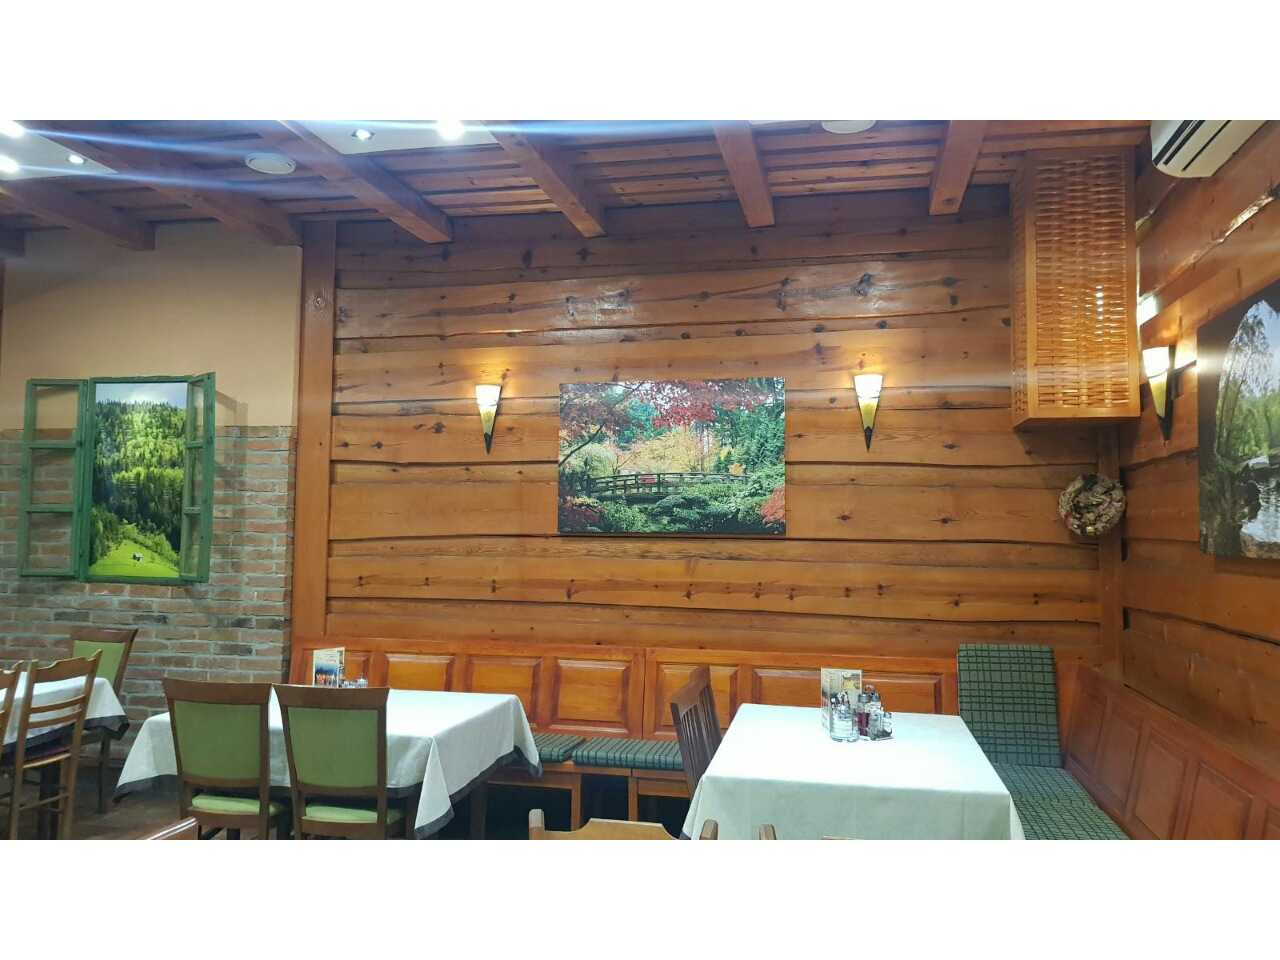 SUR MOJ ZAVICAJ Restaurants for weddings Zlatibor - Photo 6